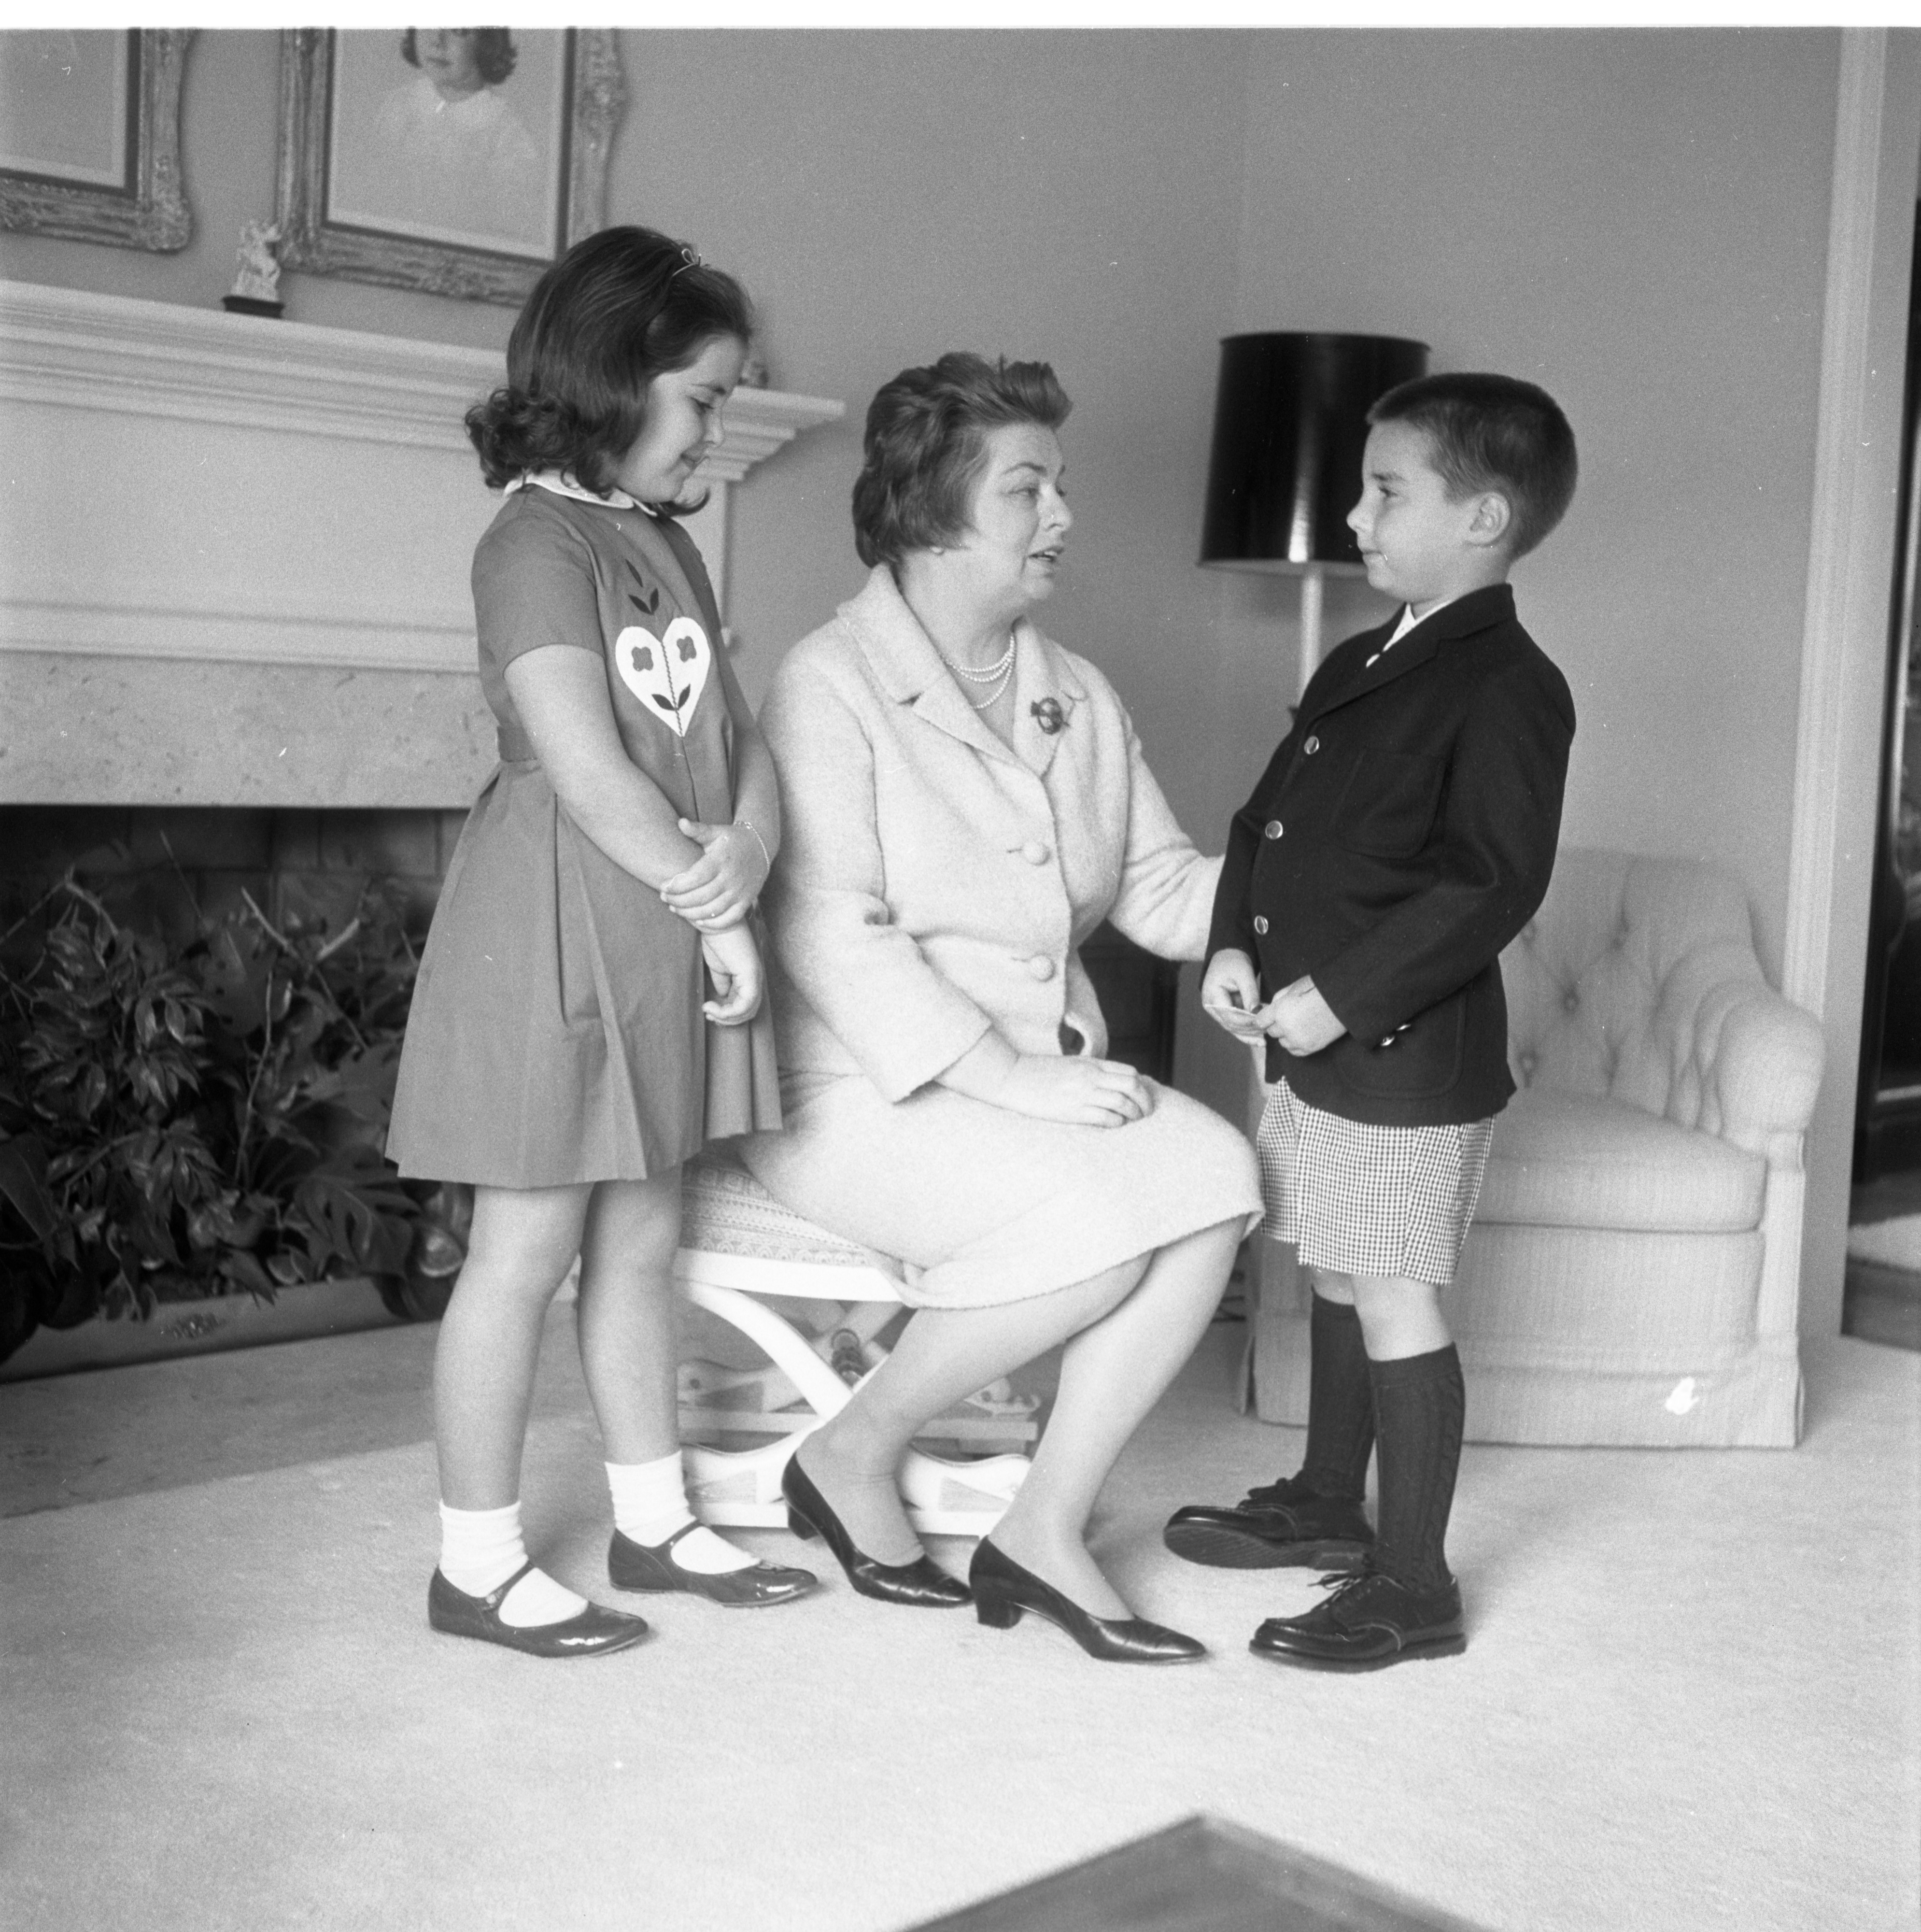 Amy Vanderbilt Visits With Godchildren Diane and George Handy, April 1965 image